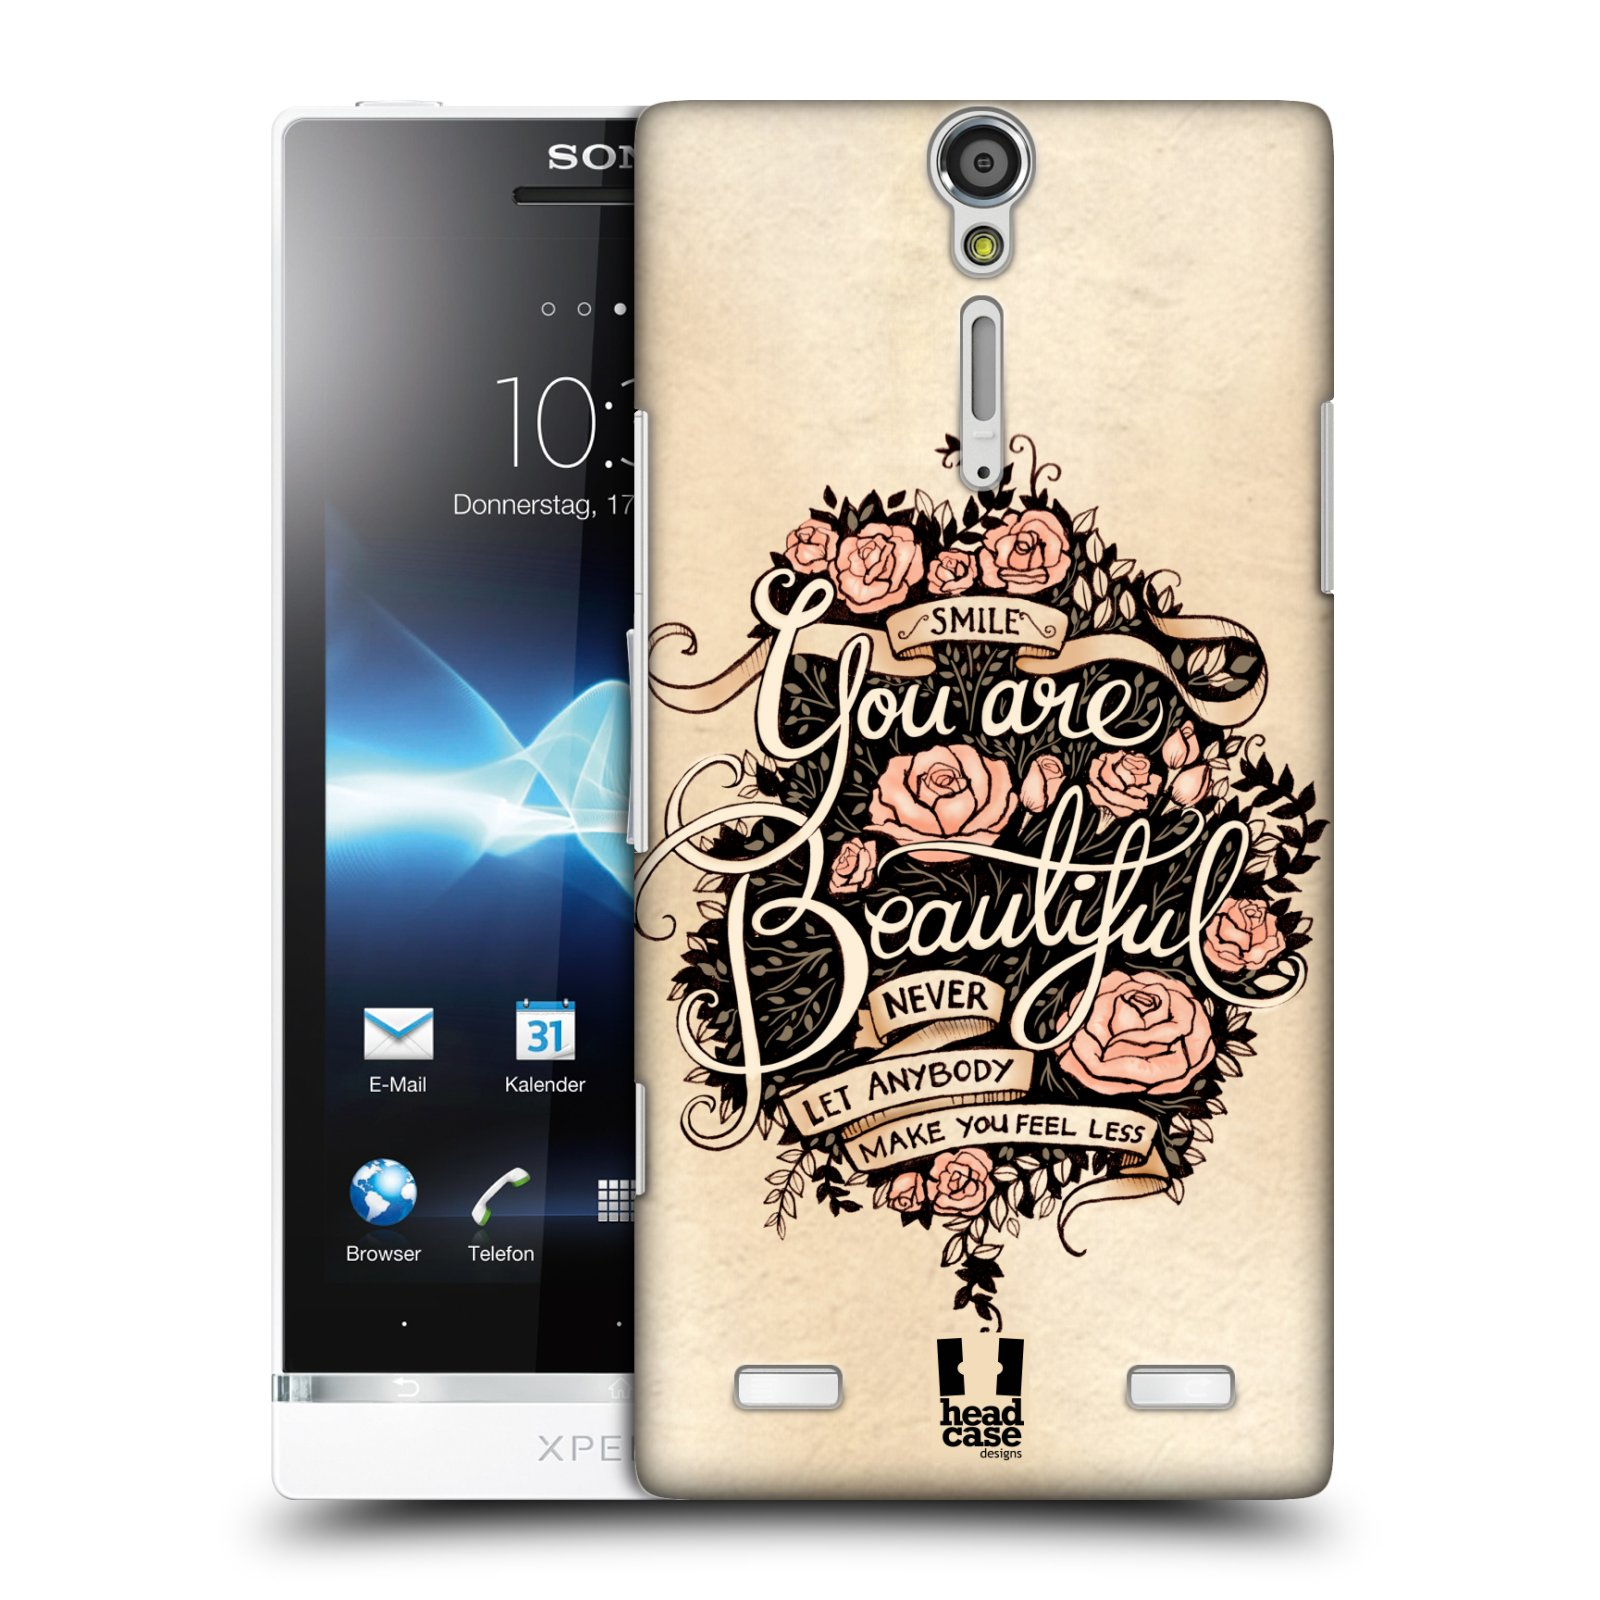 HEAD CASE DESIGNS INTROSPECTION CASE COVER FOR SONY XPERIA S LT26i